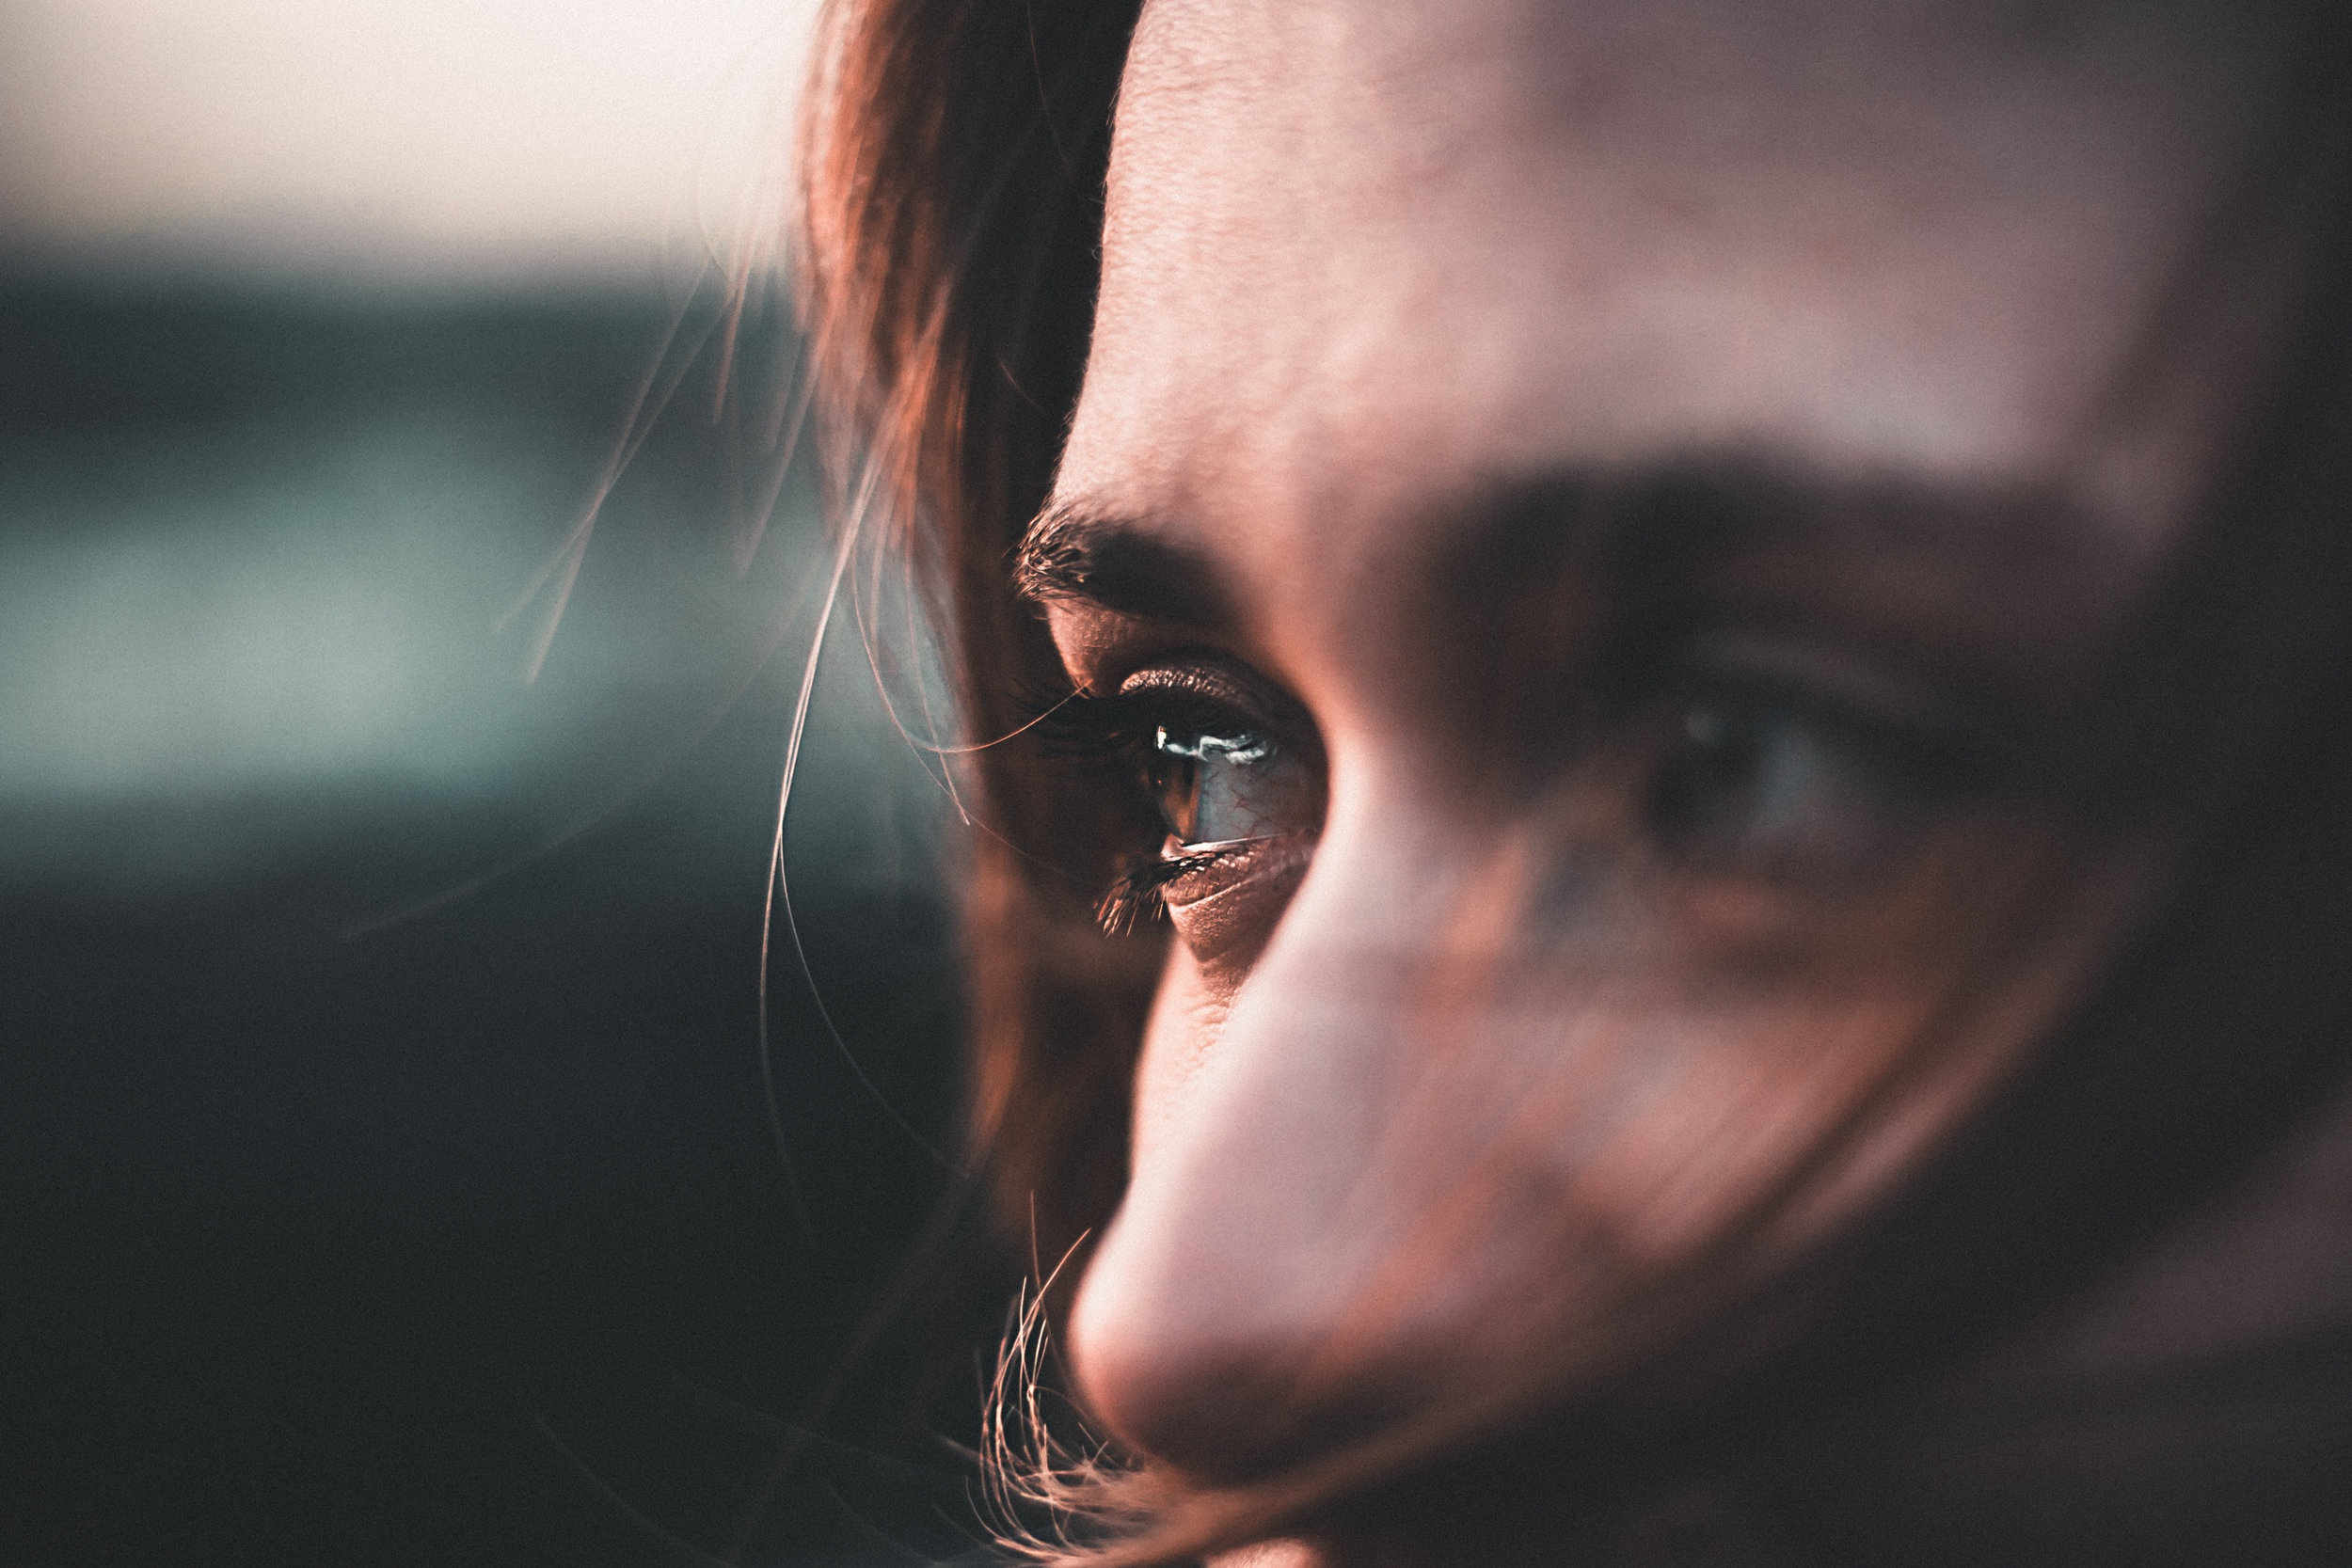 Painful Emotions: Why Is It Better to Feel Them?